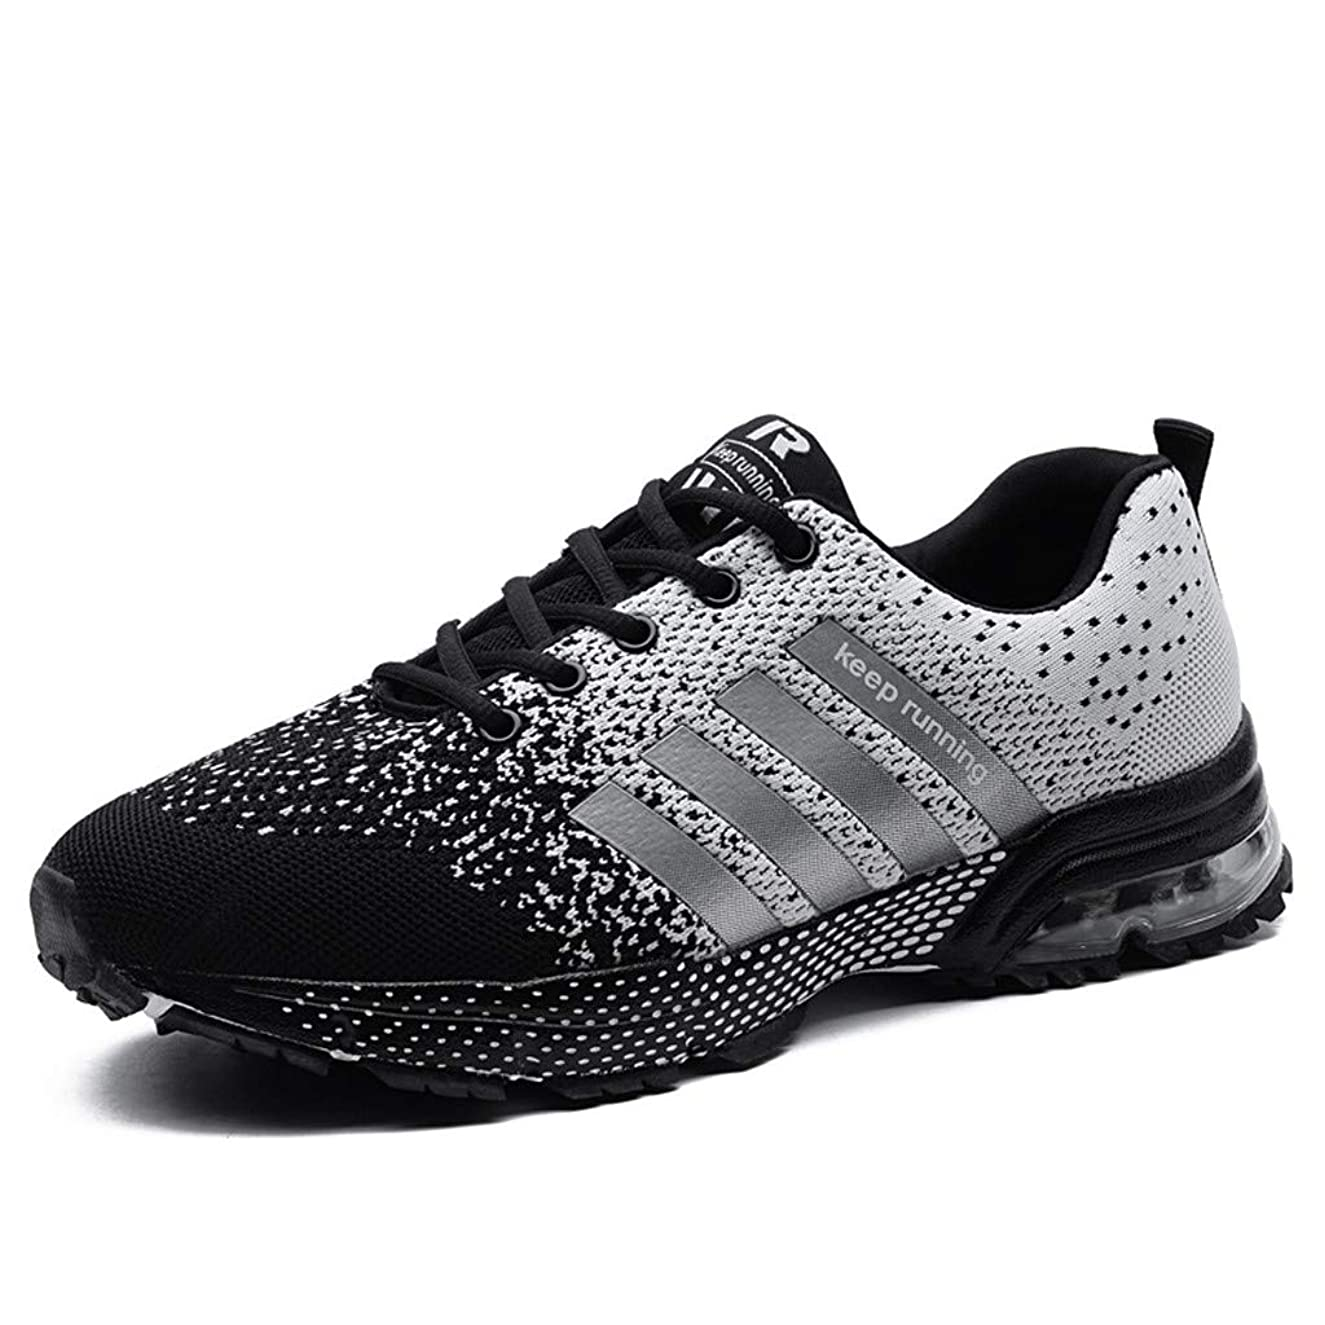 Women Sport Shoes Air Cushion Knit Breathable Casual Walking Running Sneaker